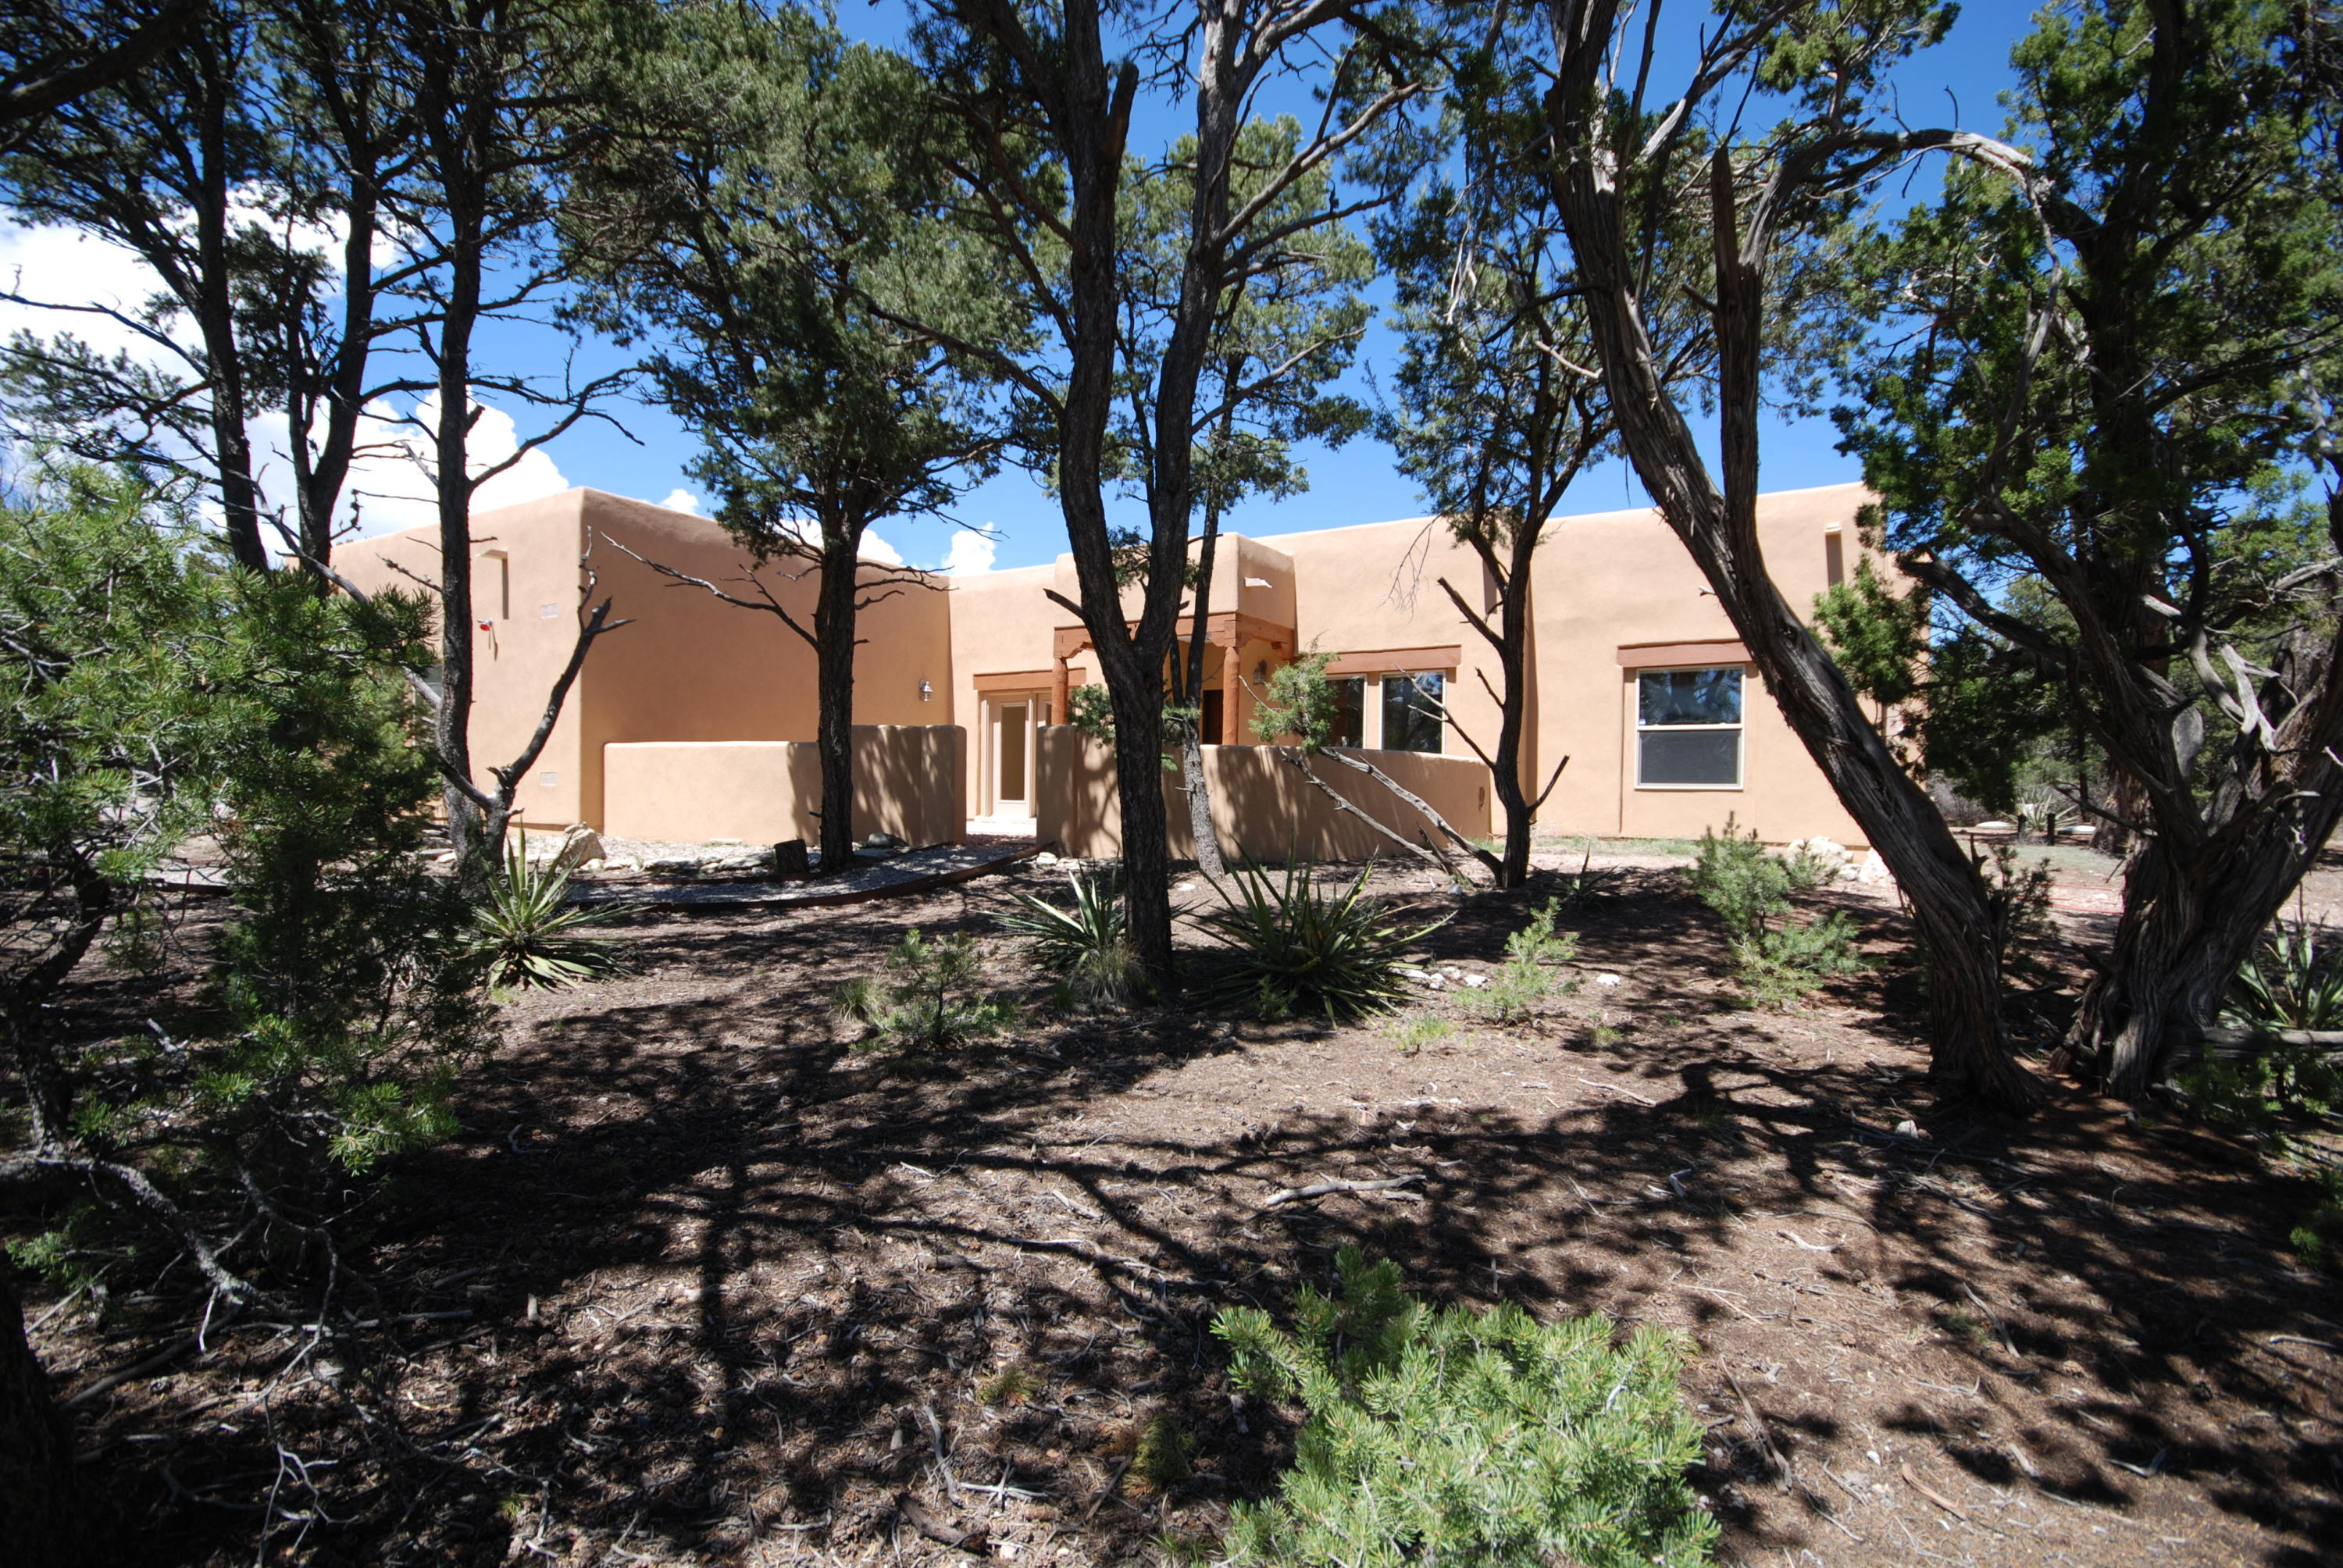 17 CRESTA VISTA Court Property Photo - Tijeras, NM real estate listing